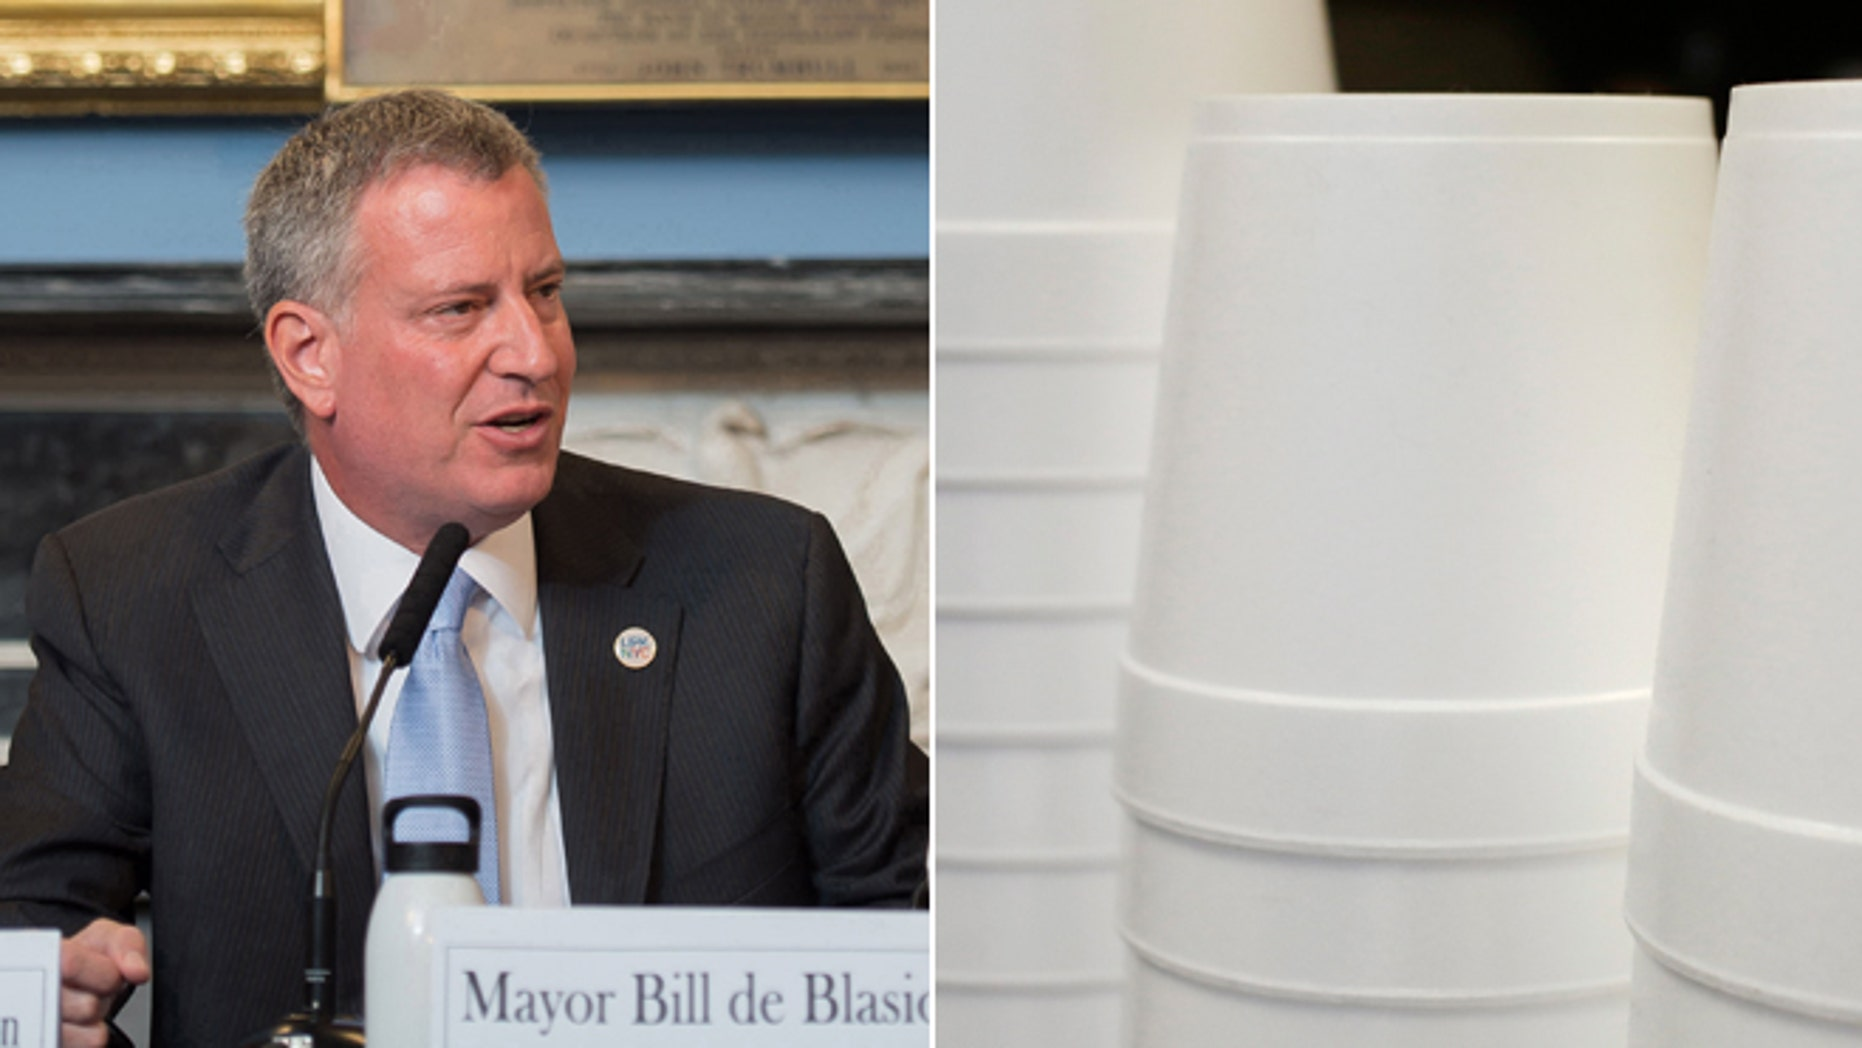 This July 31, 2014 file photo provided by the New York City Mayoral Photography Office shows New York Mayor Bill de Blasio and this Feb. 14, 2013 file photo shows foam soup containers stacked in a New York restaurant.